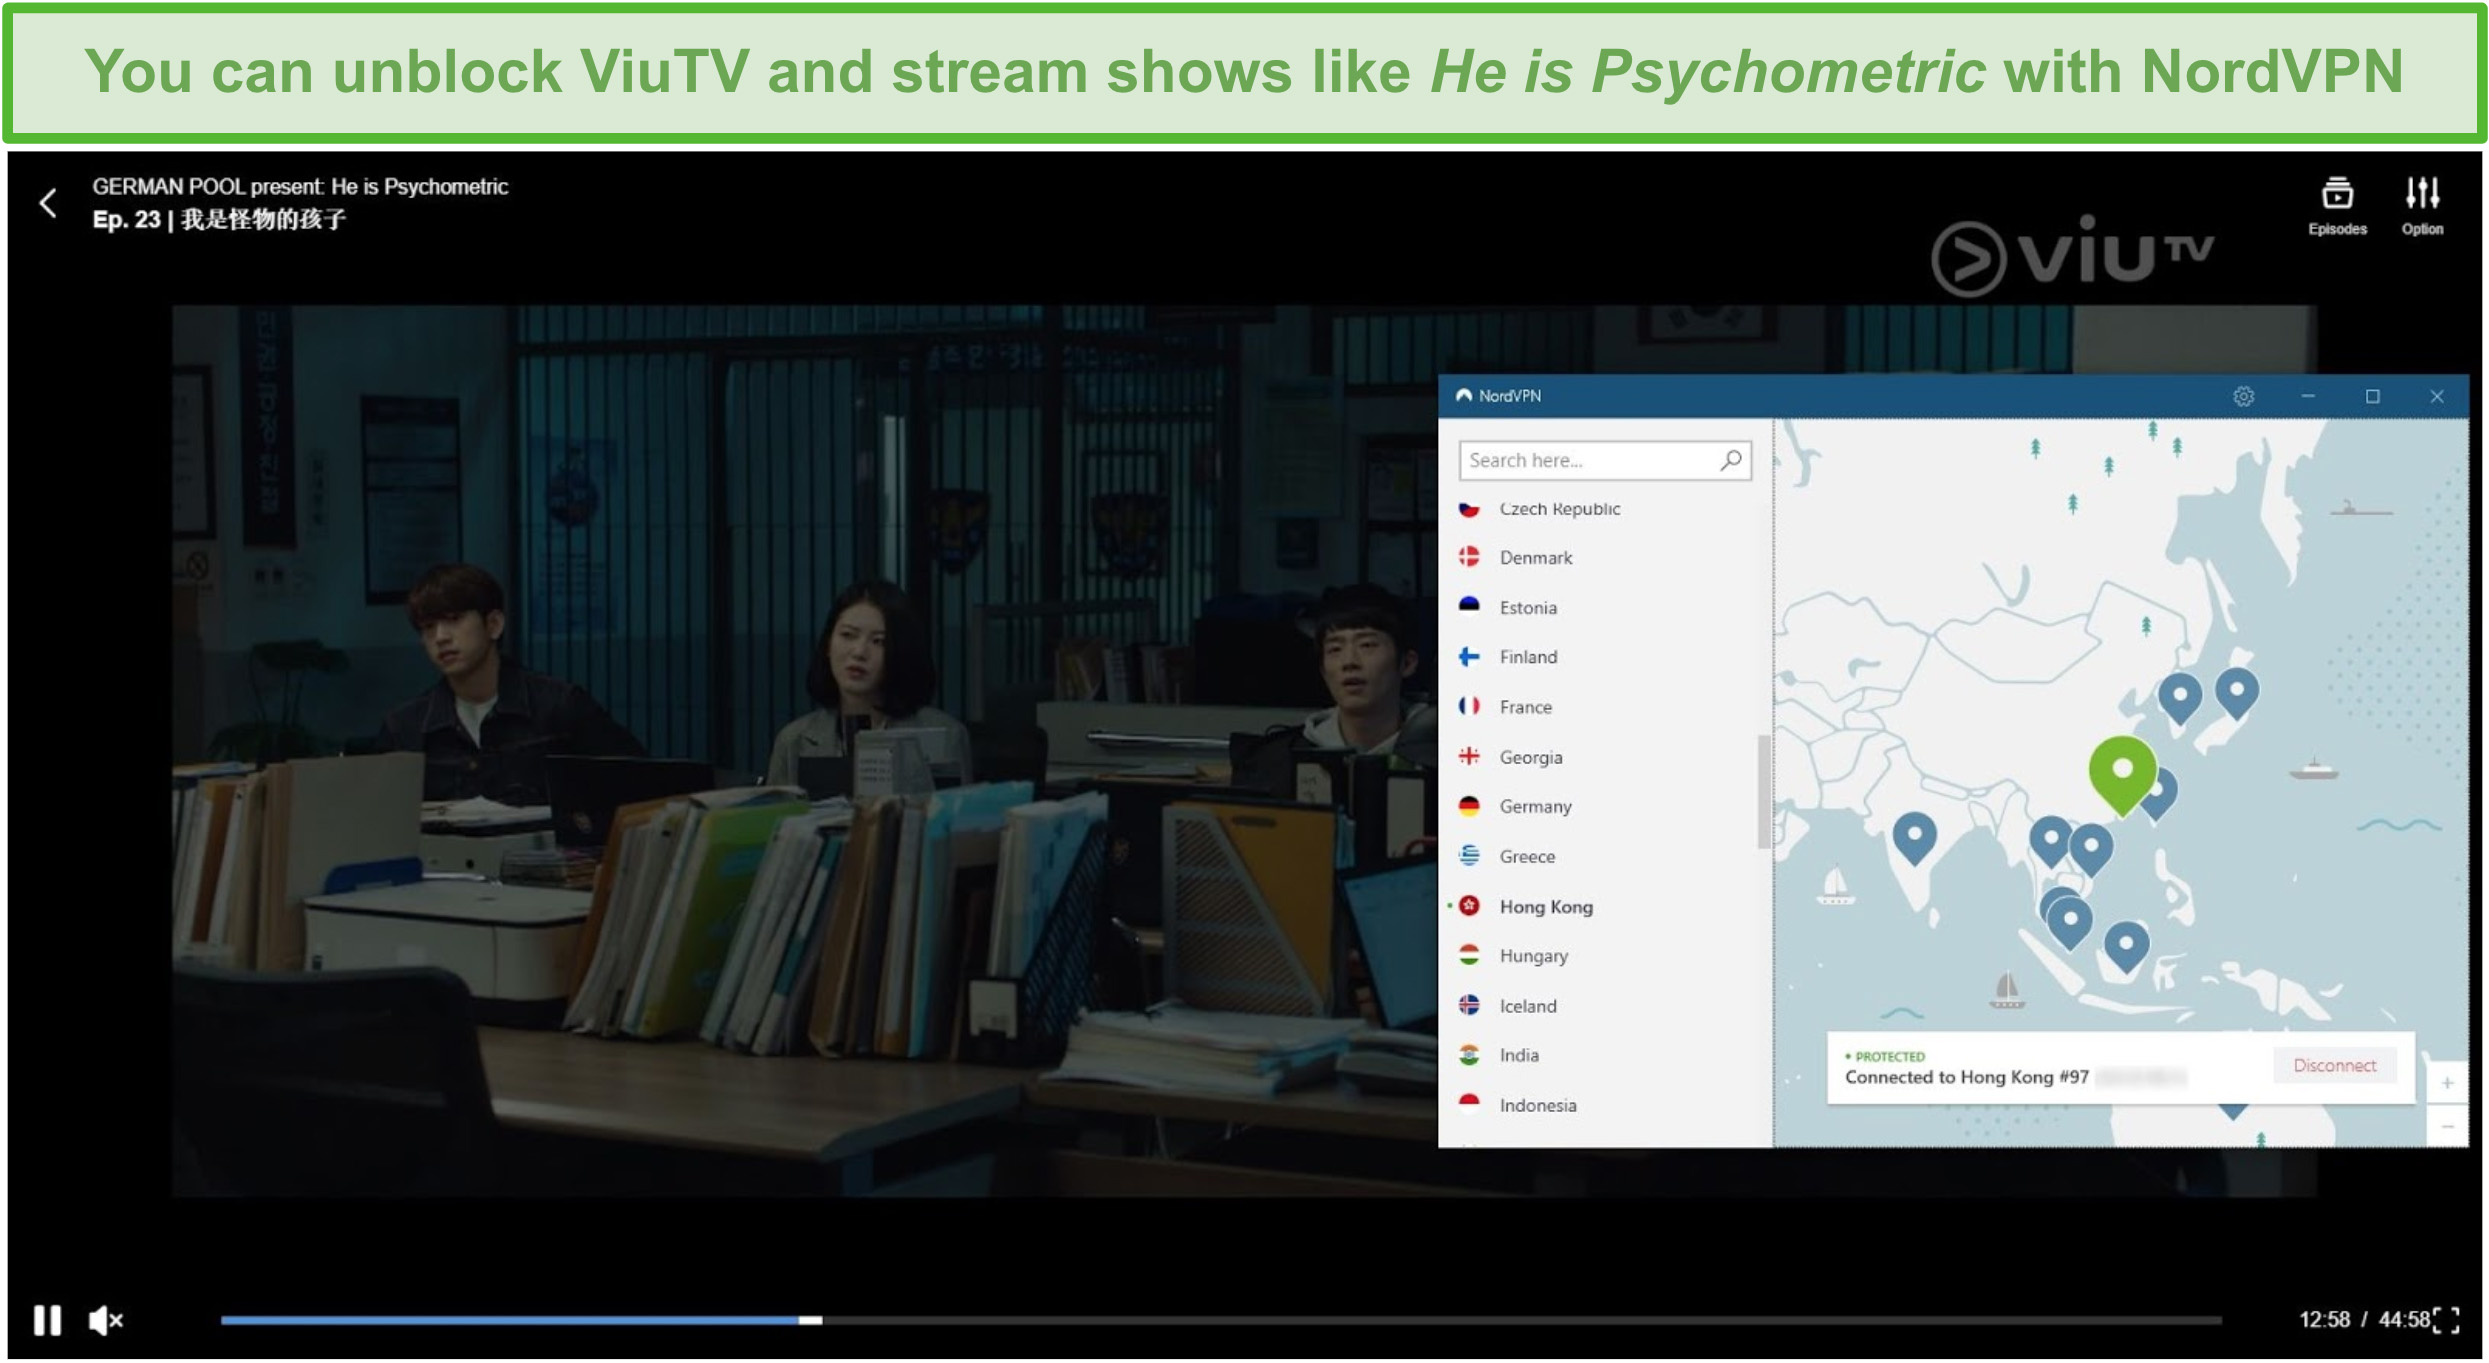 Screenshot of NordVPN unblocking ViuTV and streaming He is Psychometric, while connected to a Hong Kong server.